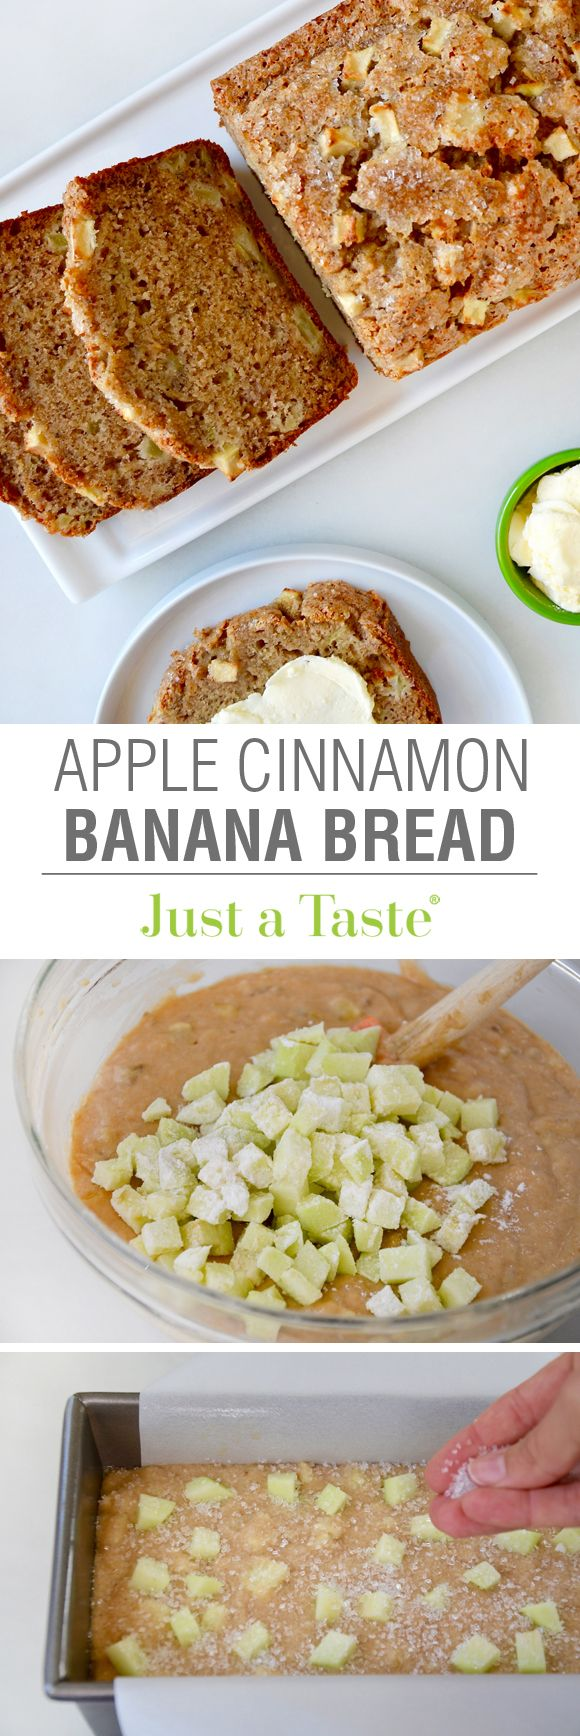 Apple Cinnamon Banana Bread #used dad's cherry lady apples from the garden                                                                                                                                                     More